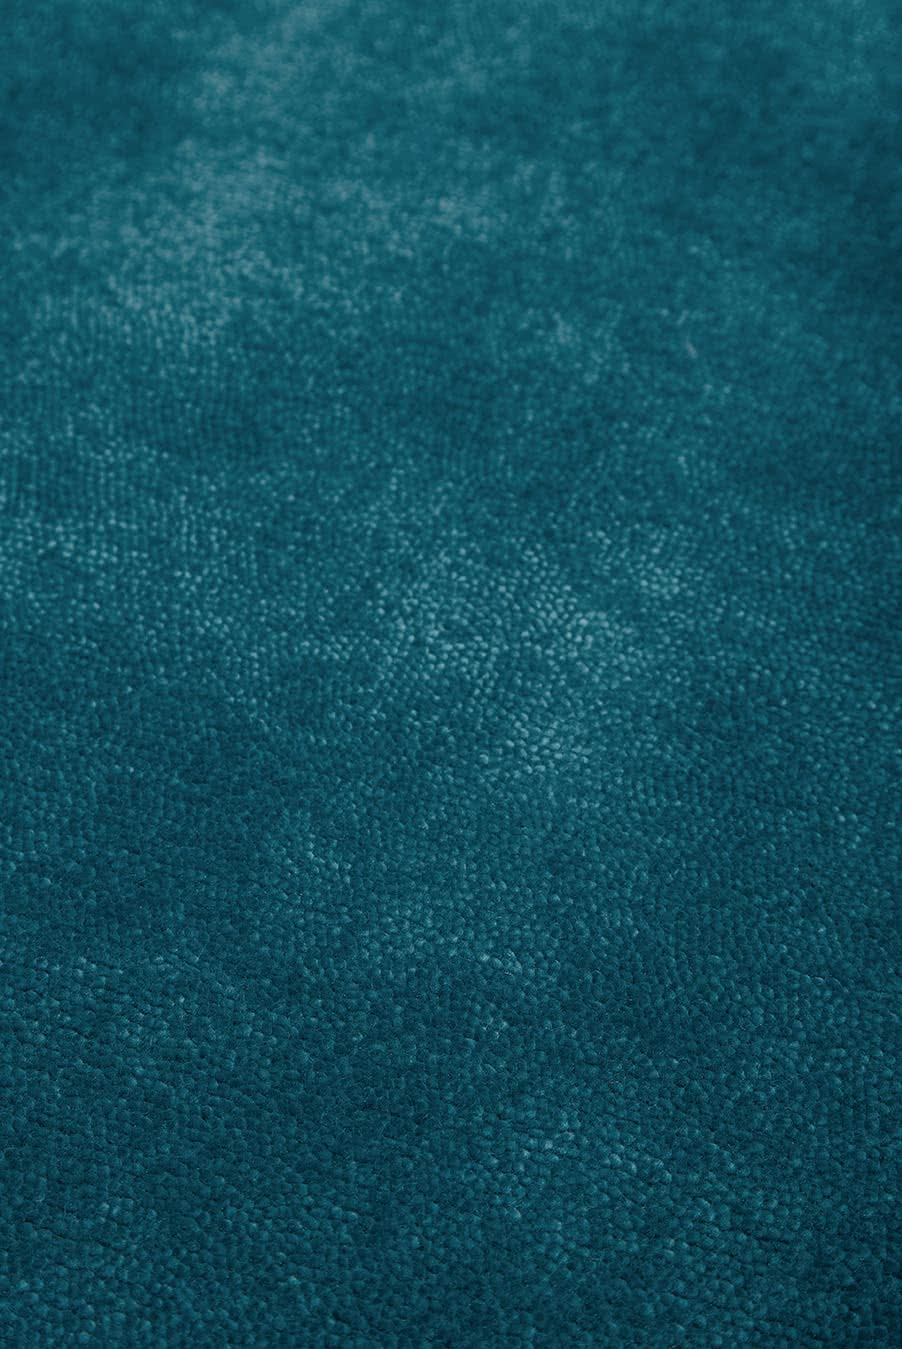 Close up view of textured Napoleon Cut Pile rug in teal colour